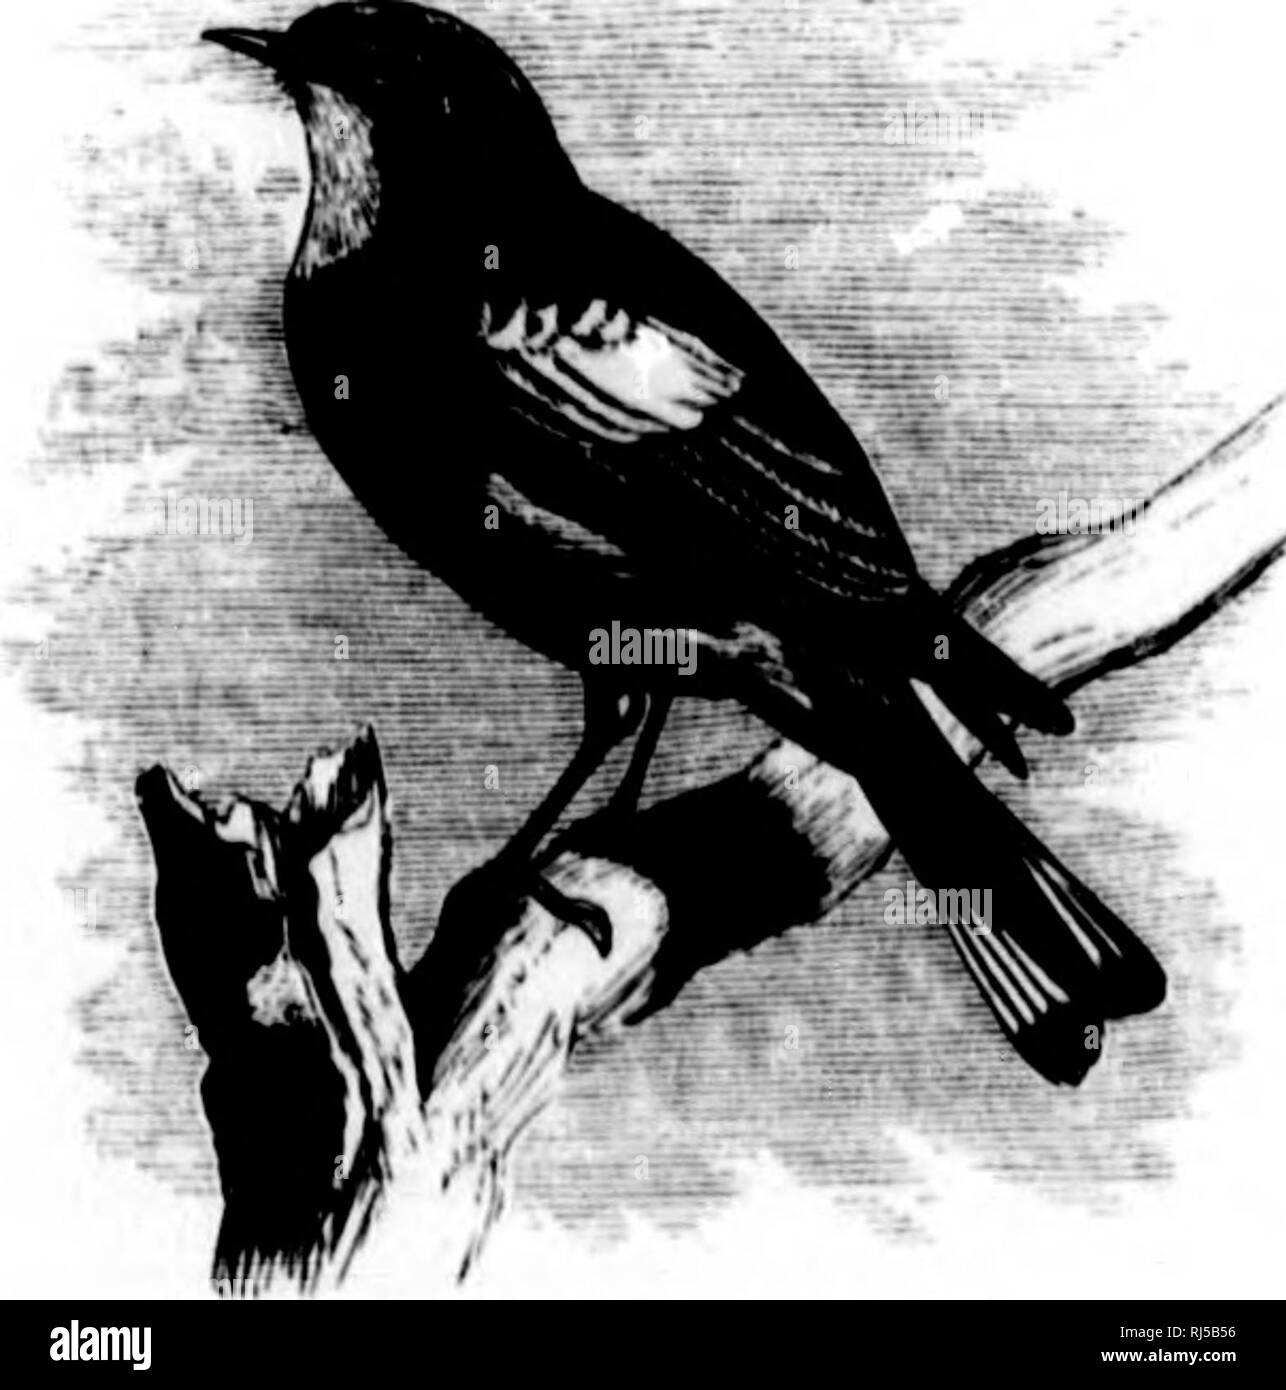 """. A history of North American birds [microform] : land birds. Birds; Ornithology; Oiseaux; Ornithologie. Dentlroica rornnala. Genus DENDROICA, Gray. Sj/hicri/n, OuAV, (Icnciii Birds, 2(1 eil. 1841, 32. (Xot of Iluiinilircys nor Swaiusou.) Dcnilriiicd, (iiiAY, (iciicia IJiiils, ApjH'iulix, 1842, 8. Ithiinam/ihufi, Hauti.auii, Hi'v. Zool. 184.""""), 342. (Not of l{aliiR'.siiiU"""", Am. Monthly Mng. 1818, and Jour, de l'liy.s. 1819.) Gen. Char. JJill conical, attoiiiuitcd, doprossod at the ba.se, where it is, however, scarcely lu'oader than hij^h, (.'onipressed from the mid- dle. Culincn .str - Stock Image"""